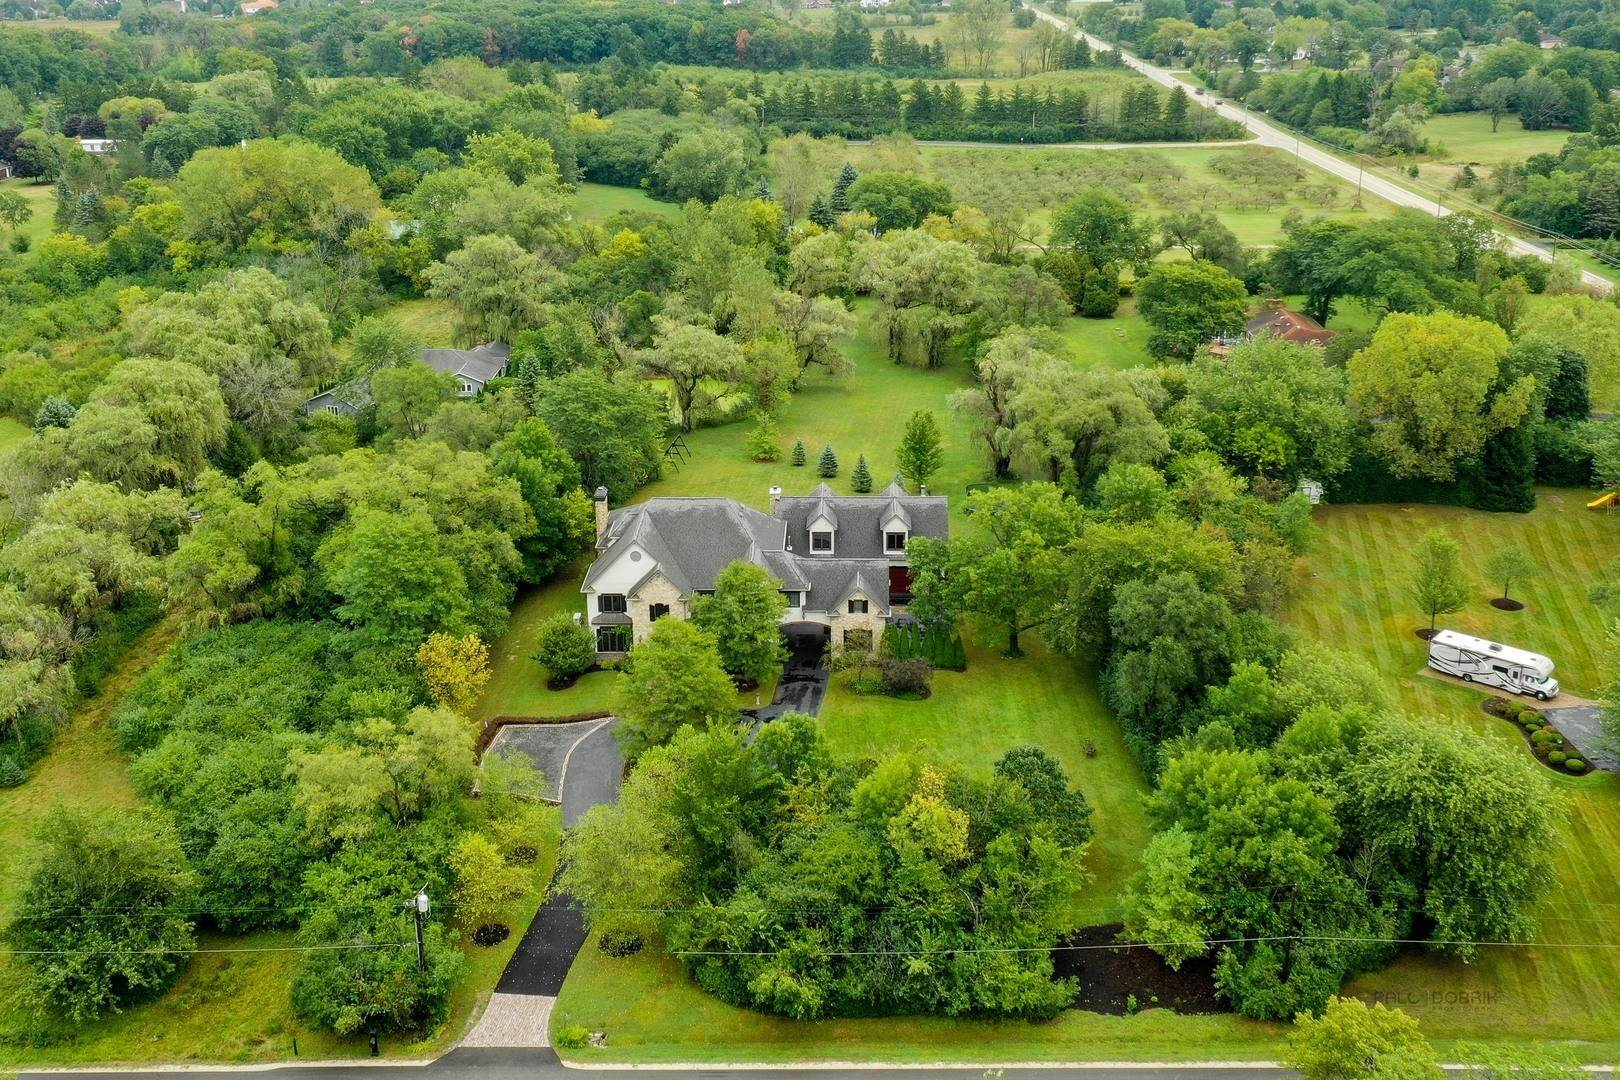 Single Family Homes for Sale at 950 Benson Lane Libertyville, Illinois 60048 United States